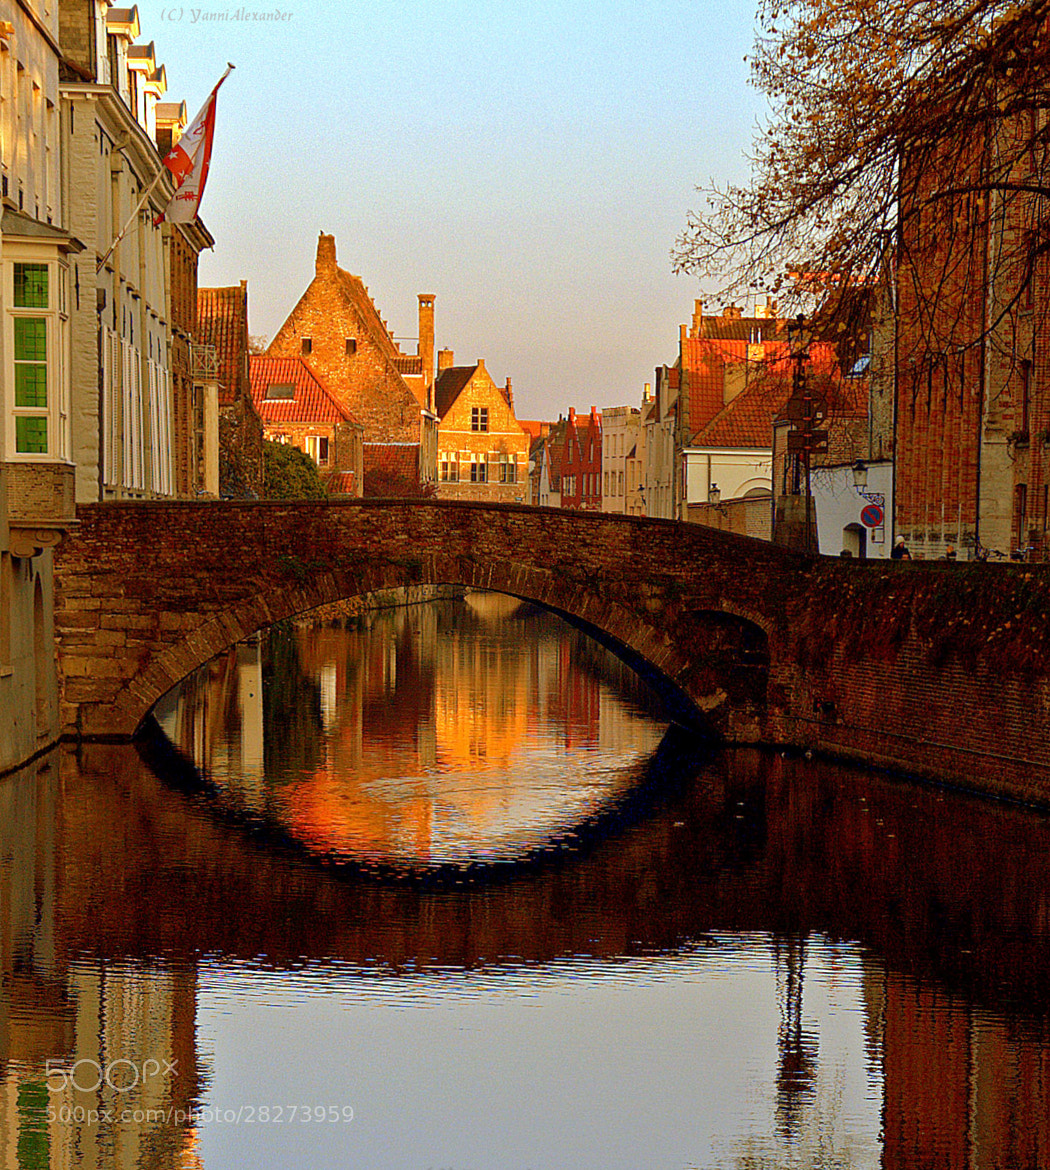 Photograph Reflections of Bruge. by Ioannis Alexander on 500px